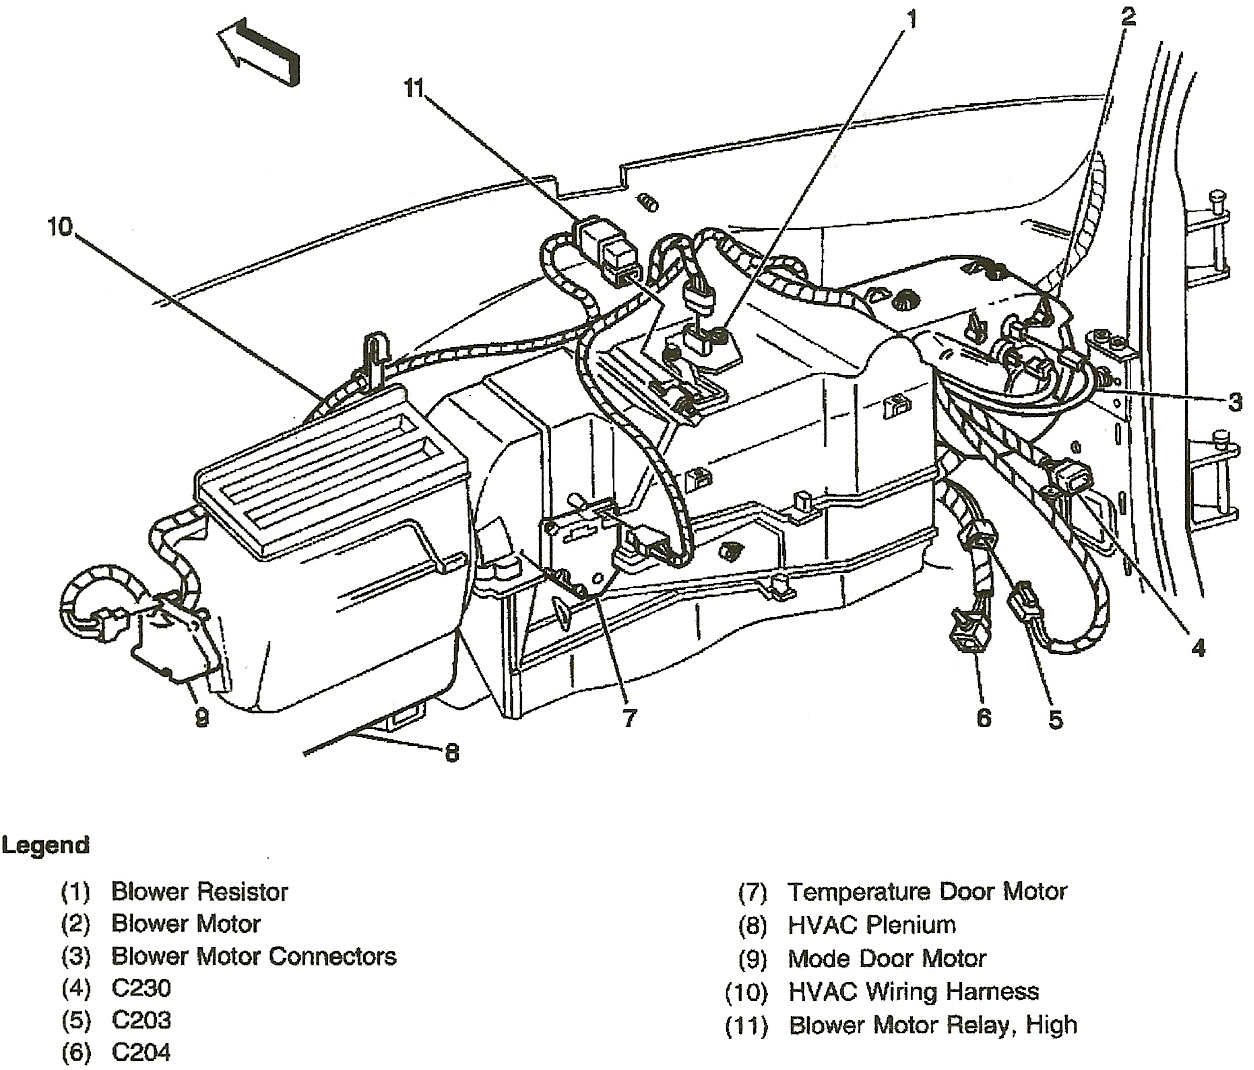 hight resolution of 1999 gmc suburban engine diagram wiring diagram third level 1999 suburban repair 1999 chevy suburban engine diagram